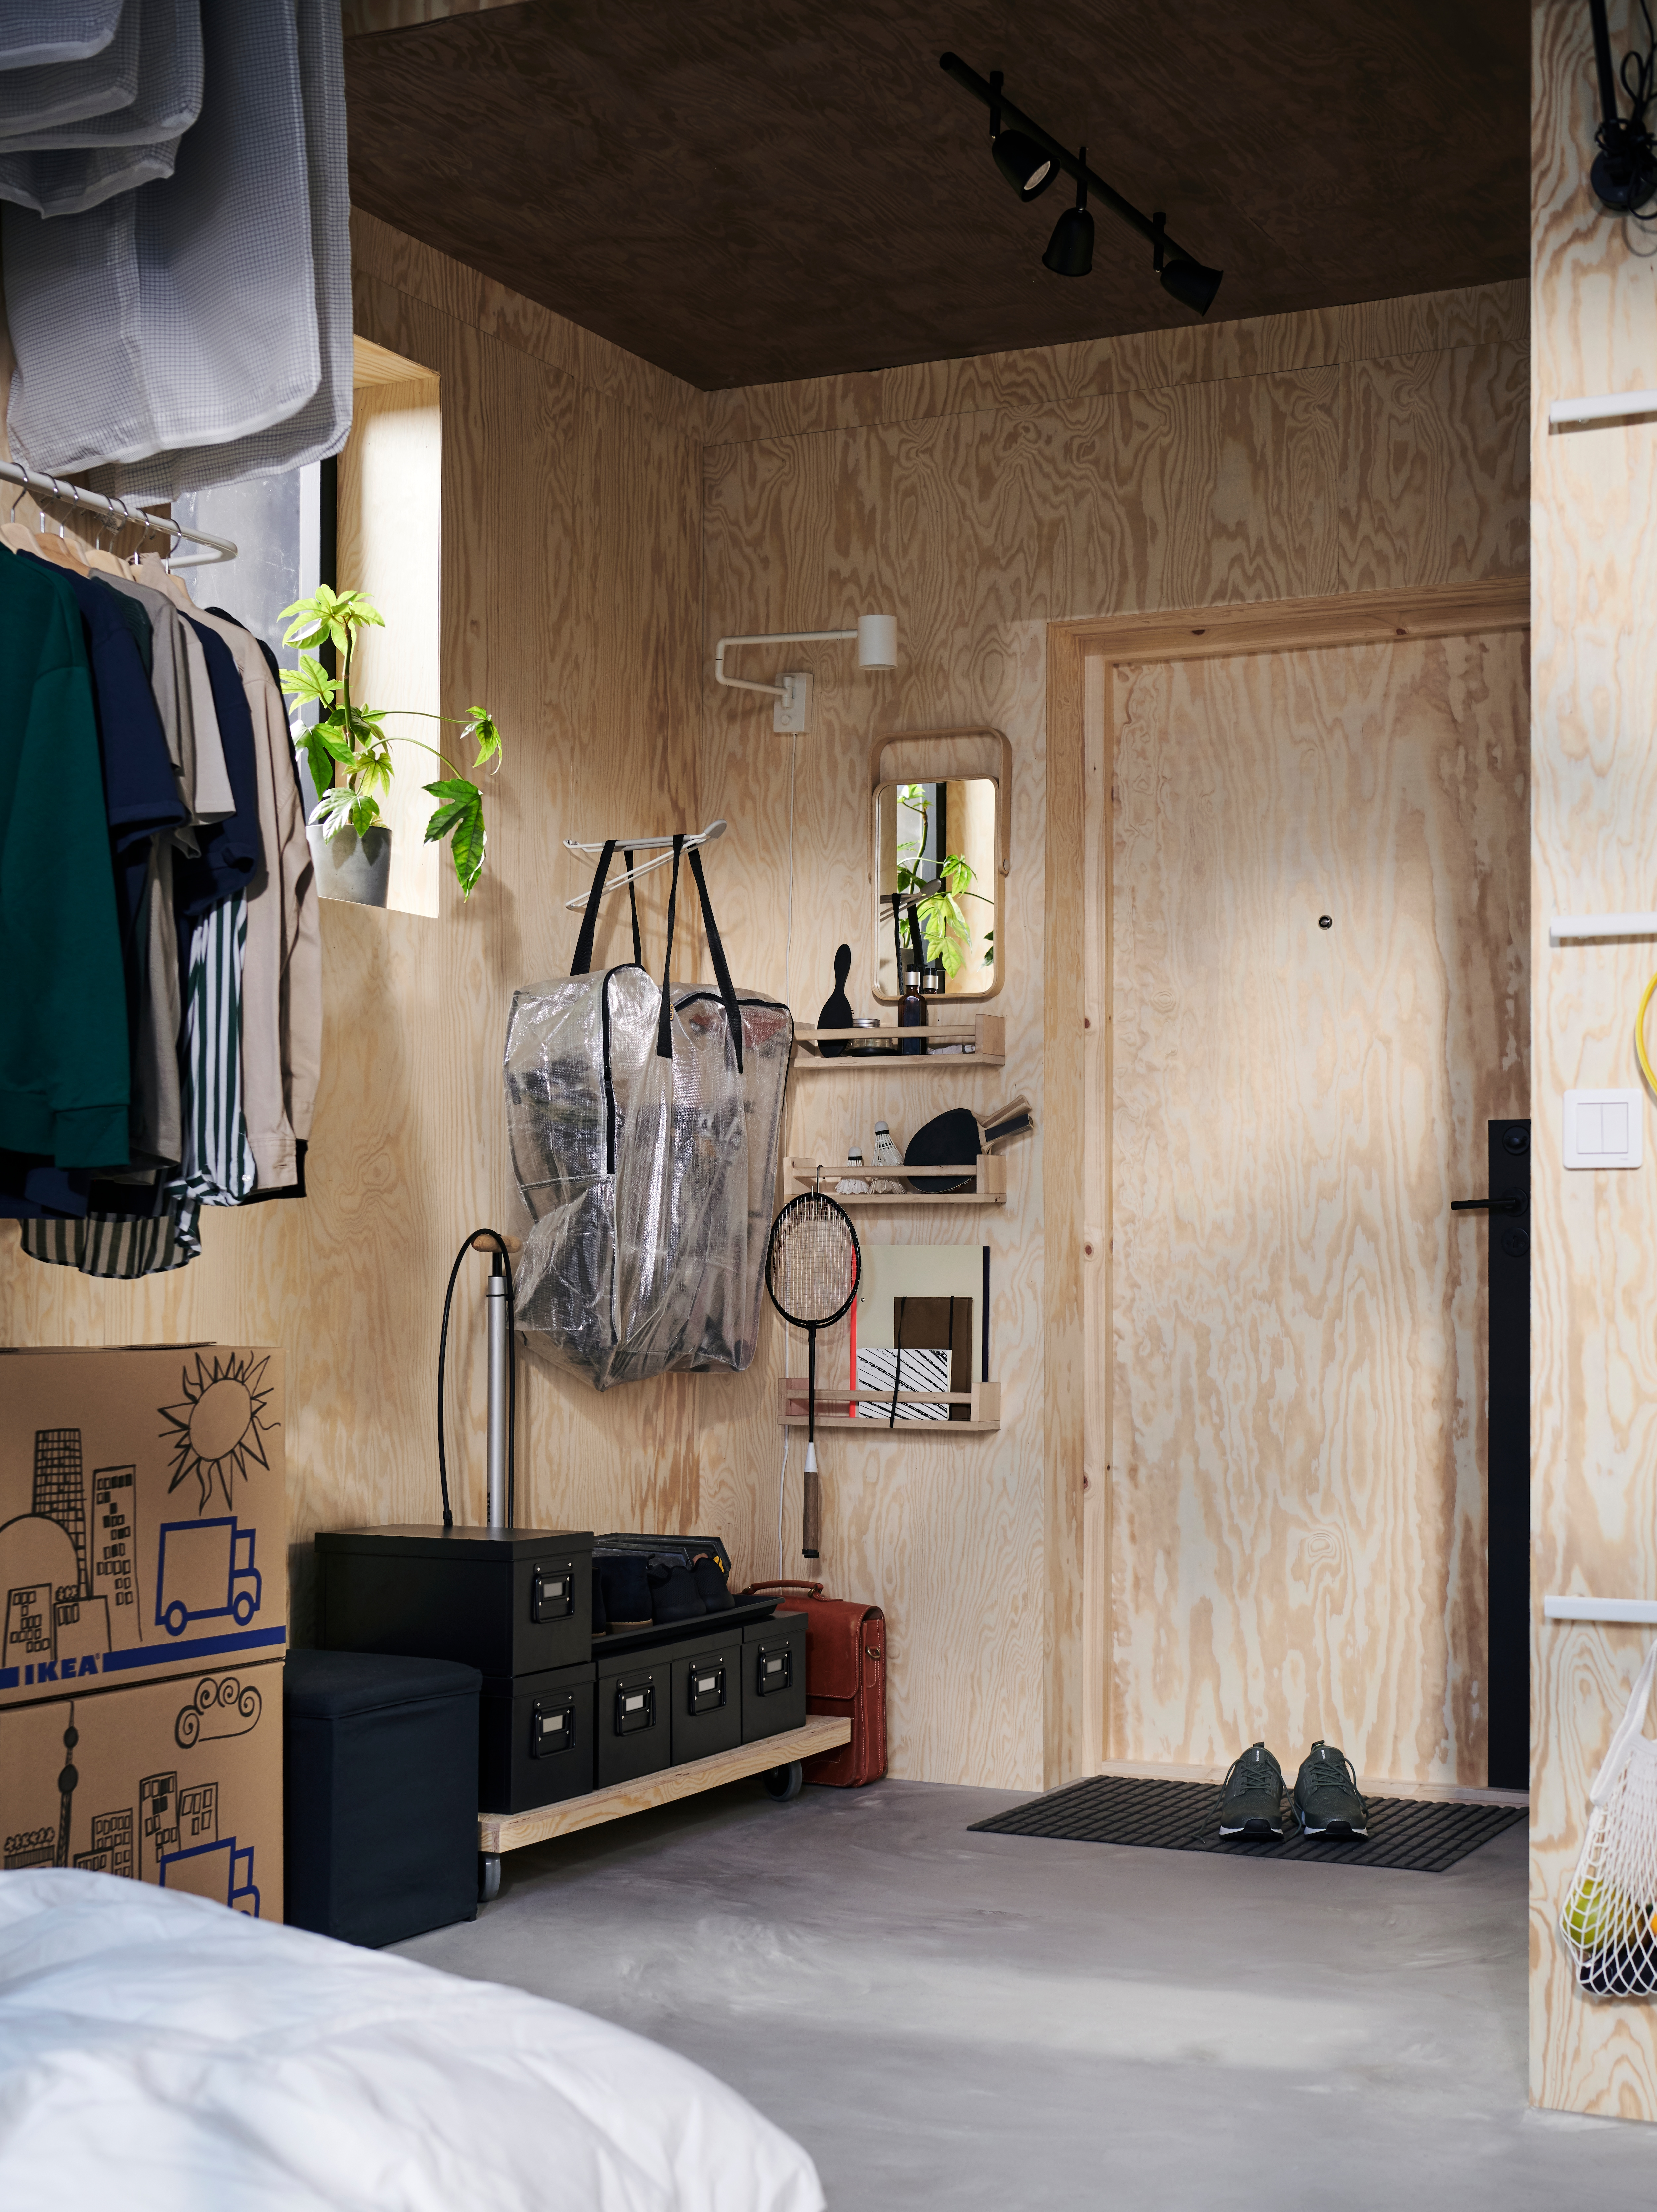 Hallway with storage bag, black storage boxes with lids, black footstool with storage space, wall lamp with swinging arm.